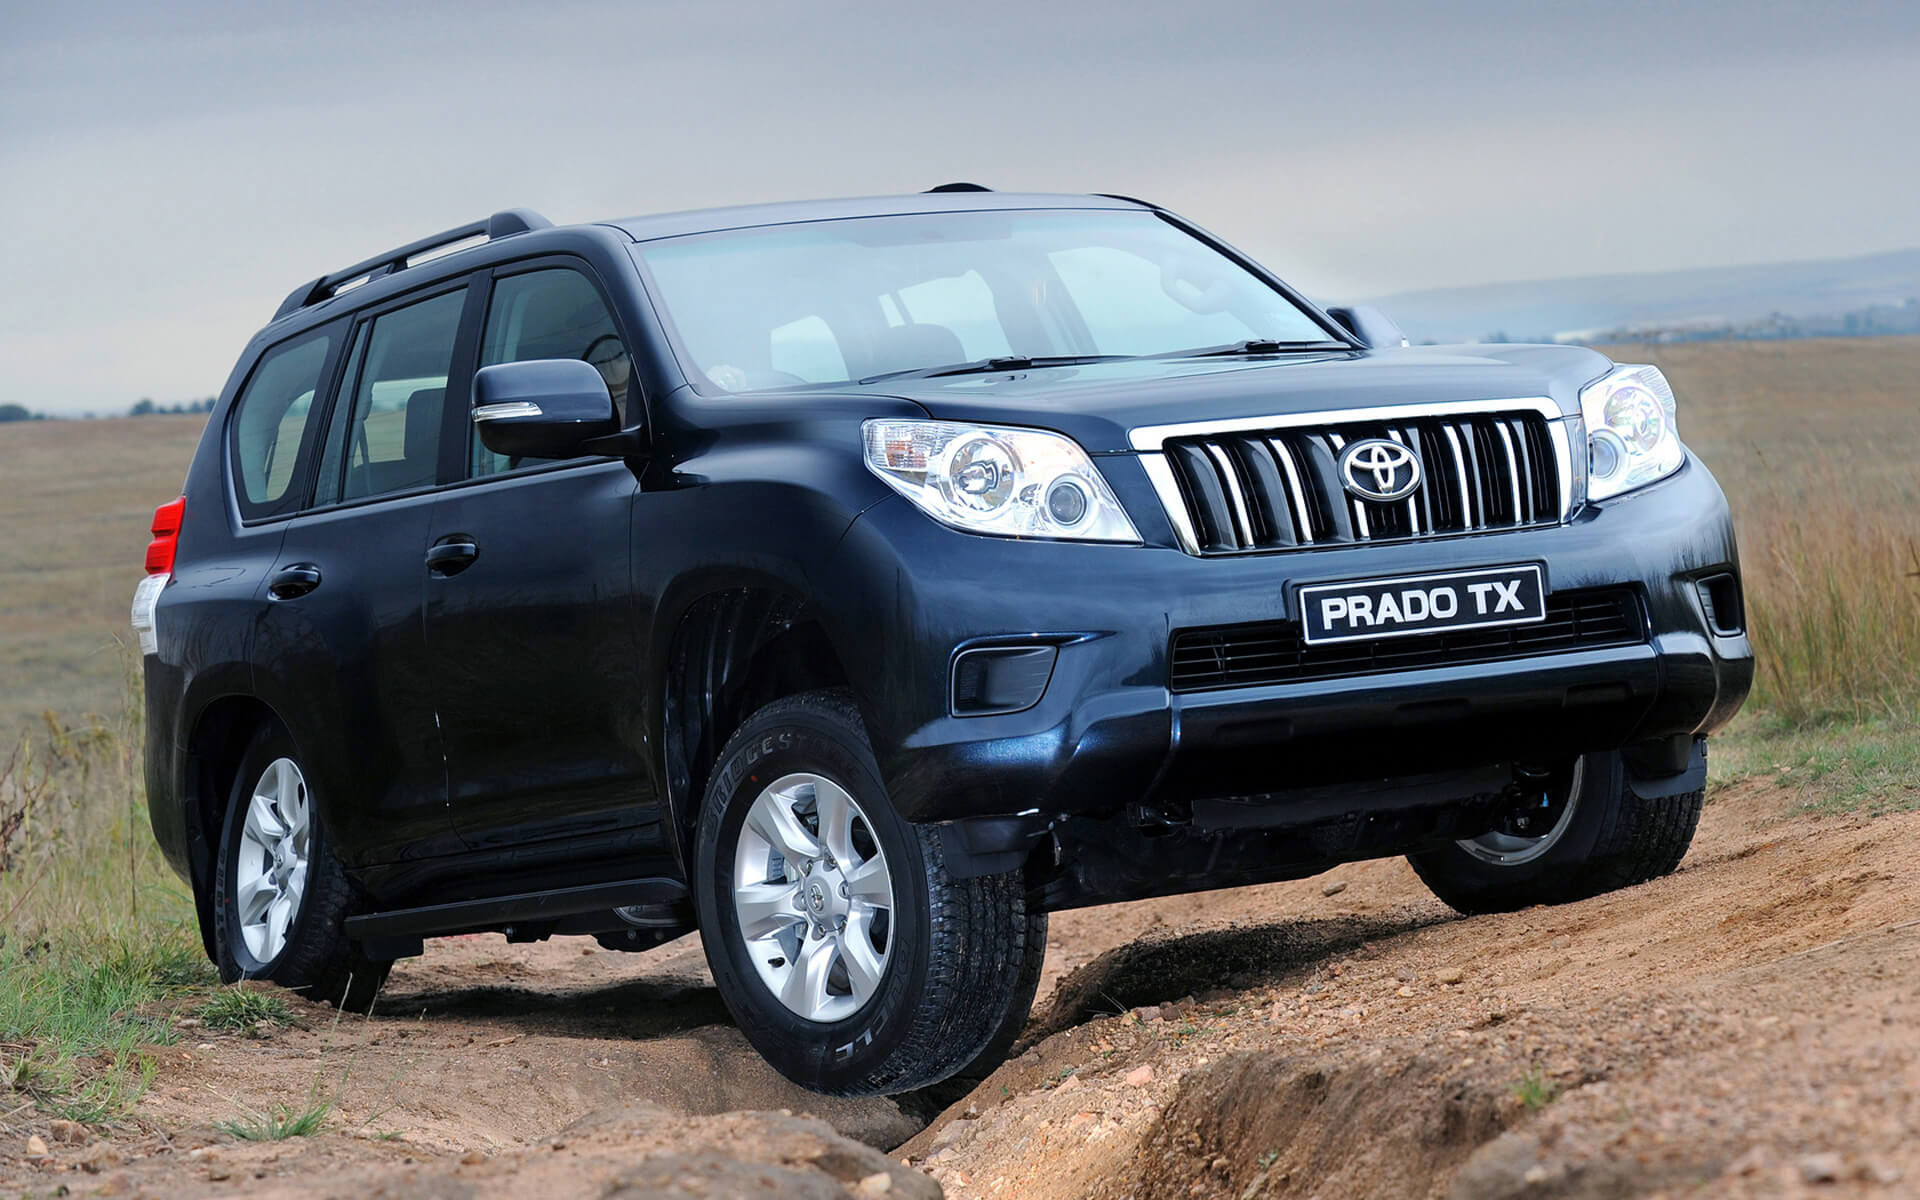 land cruiser prado tx wallpaper background